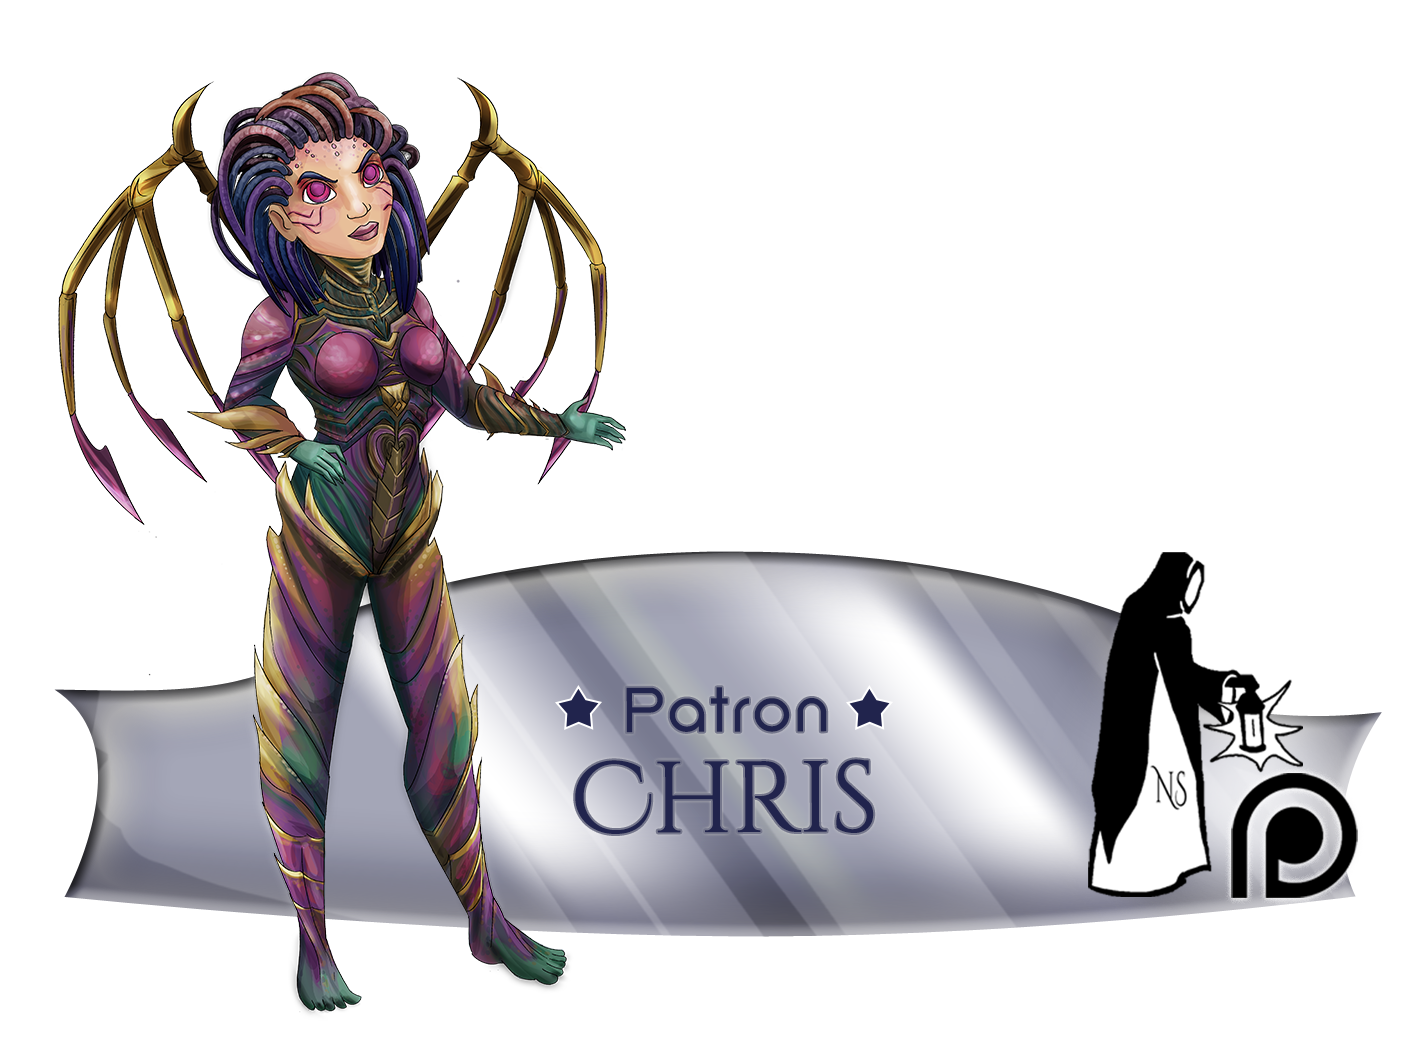 Patron Chris